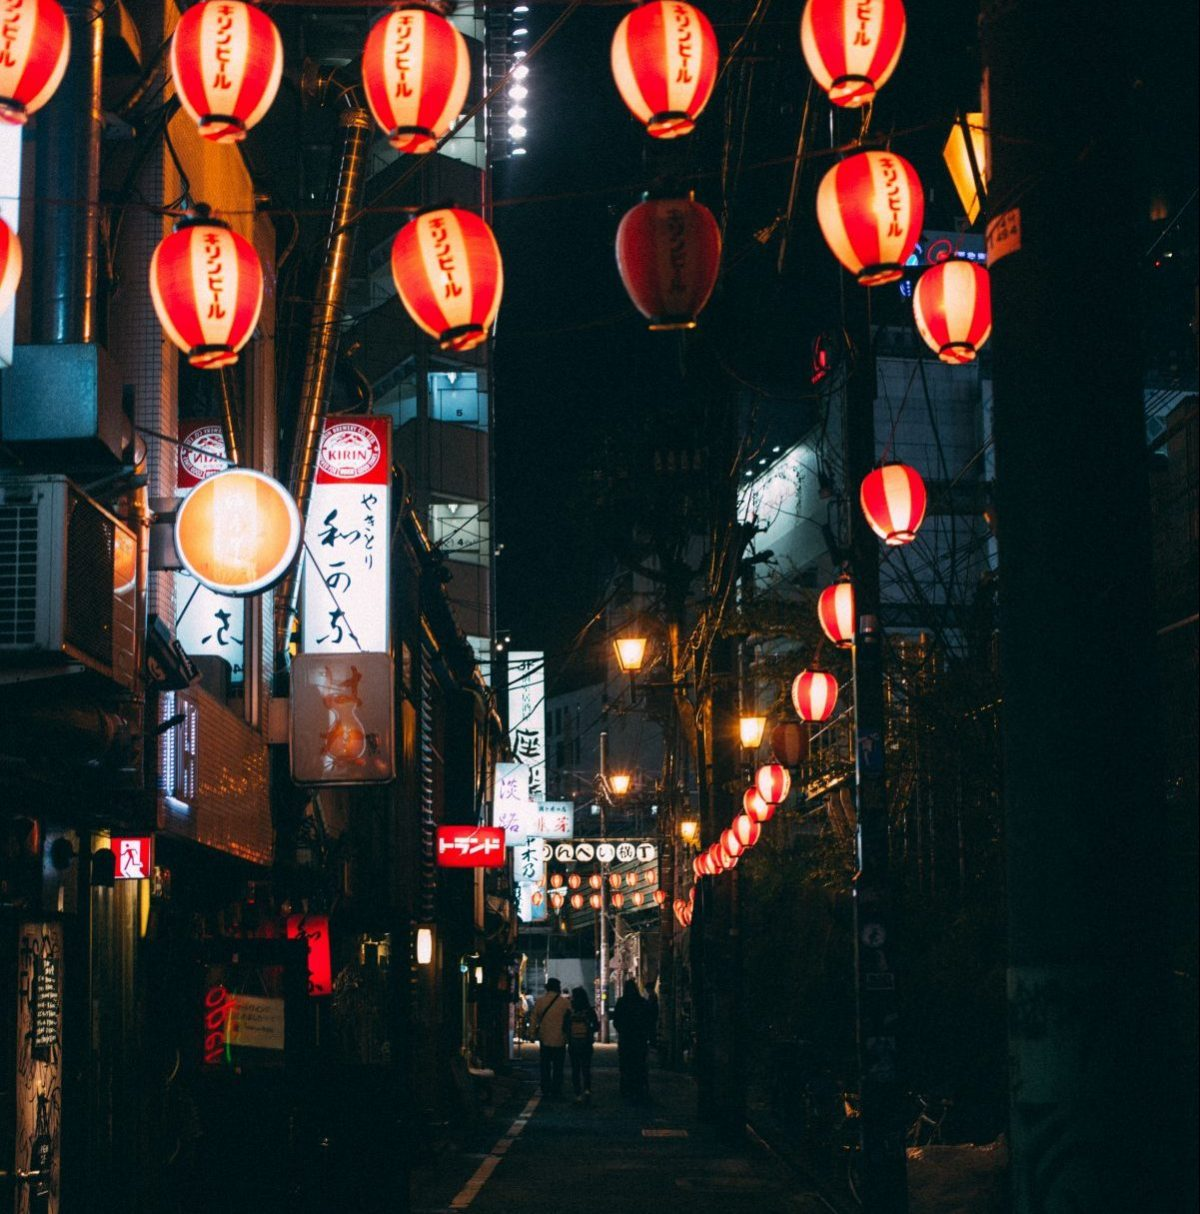 A dimly lit, small Japanese alleyway at night with red lanterns above lining the street and a few Japanese signages lit up with three people walking a few steps away